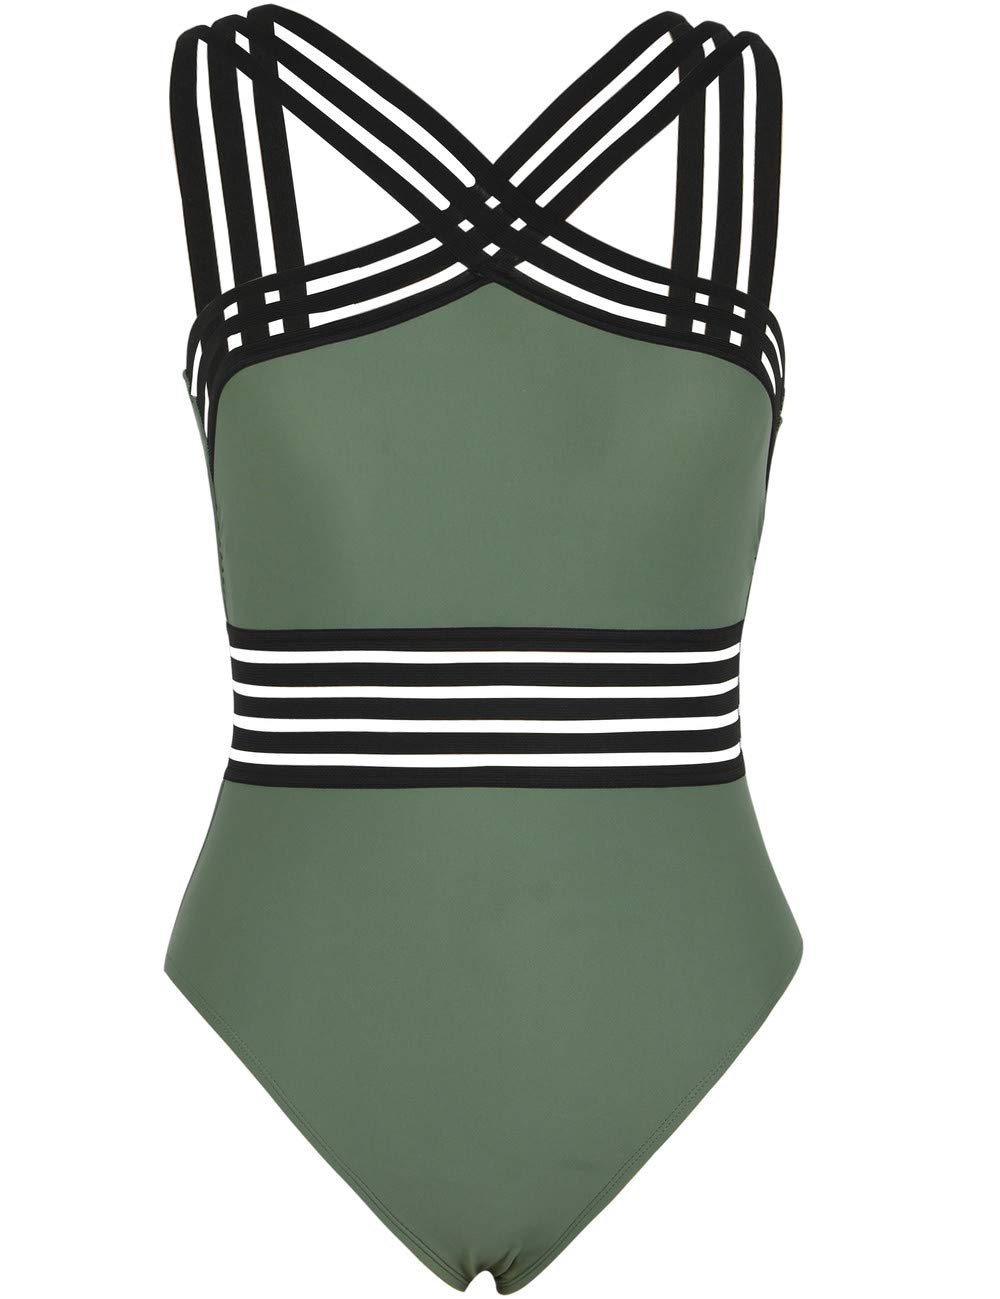 Hilor Women's One Piece Swimwear Front Crossover Swimsuits Hollow Bathing Suits Monokinis Army Green S/US4-6